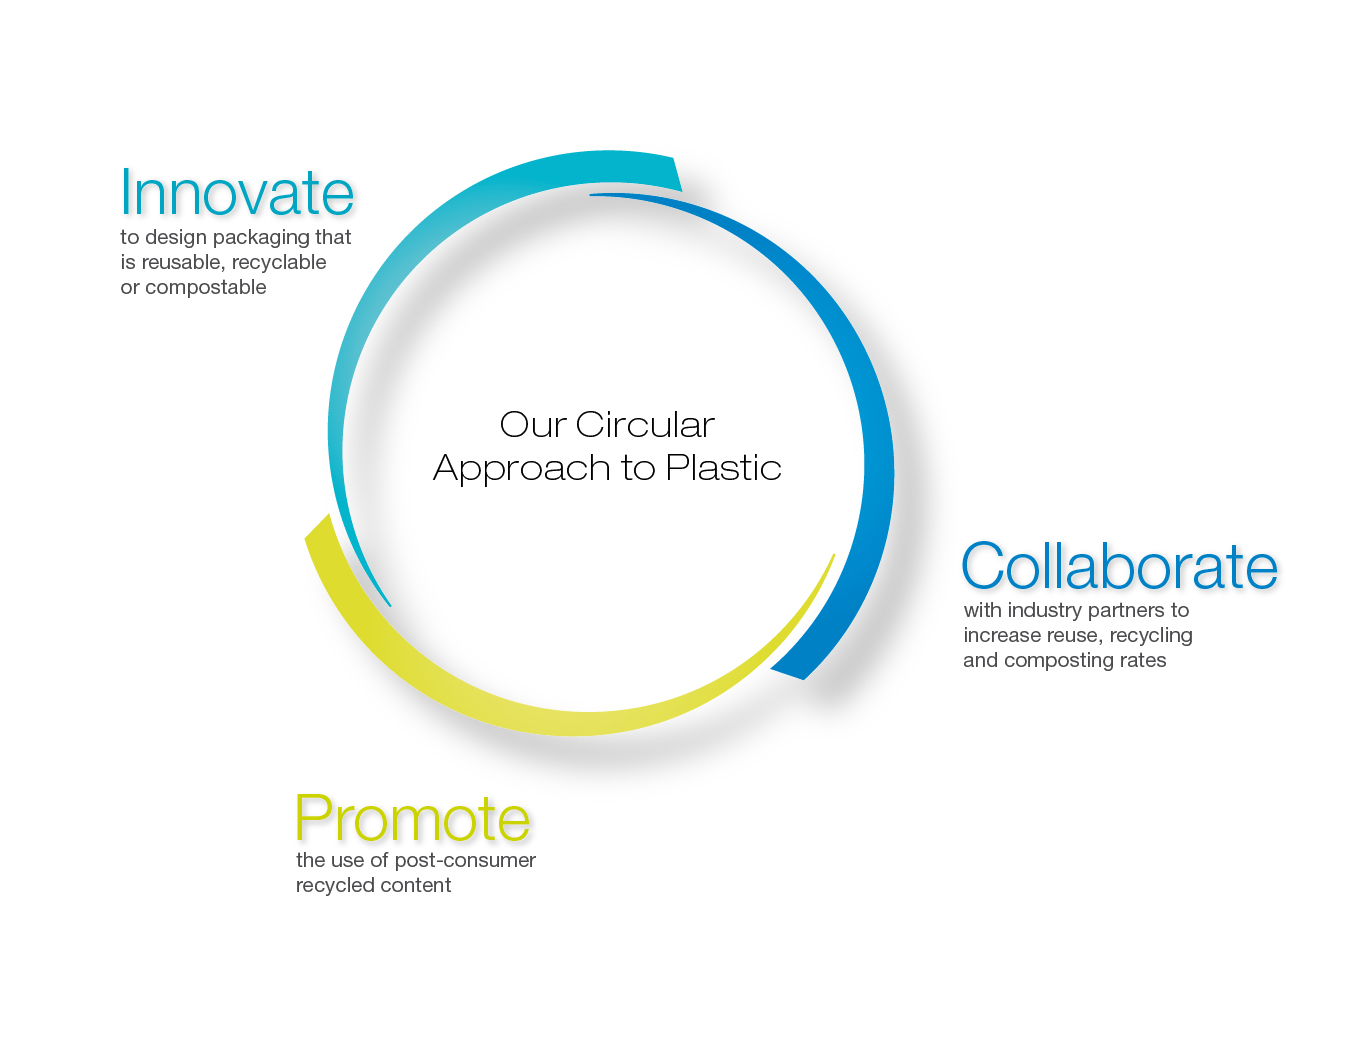 Our Circular Approach to Plastic